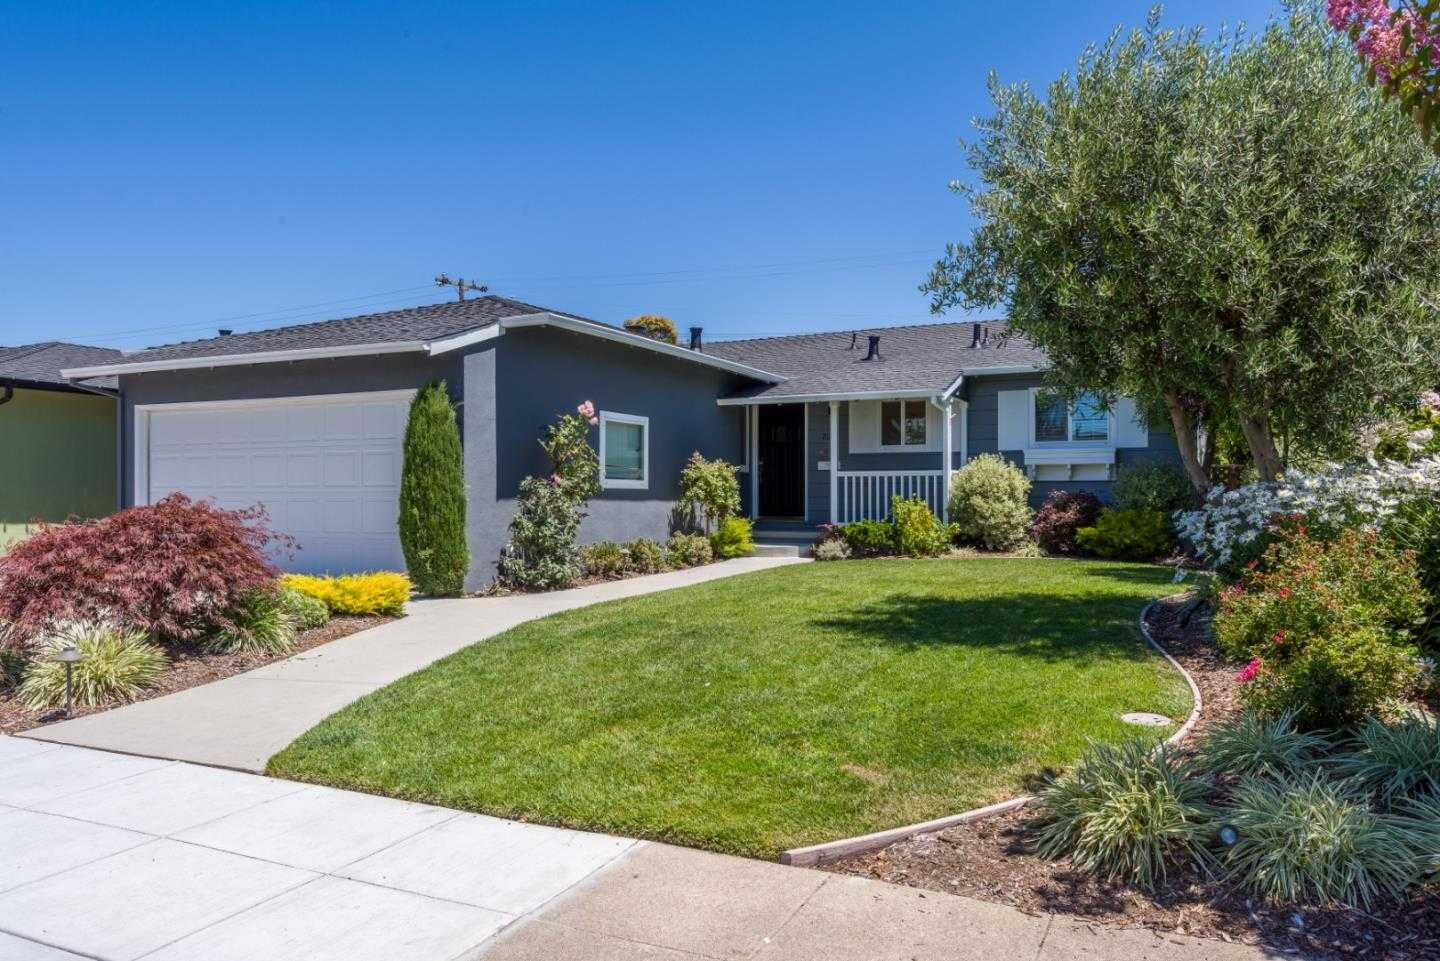 $1,325,000 - 3Br/1Ba -  for Sale in San Mateo